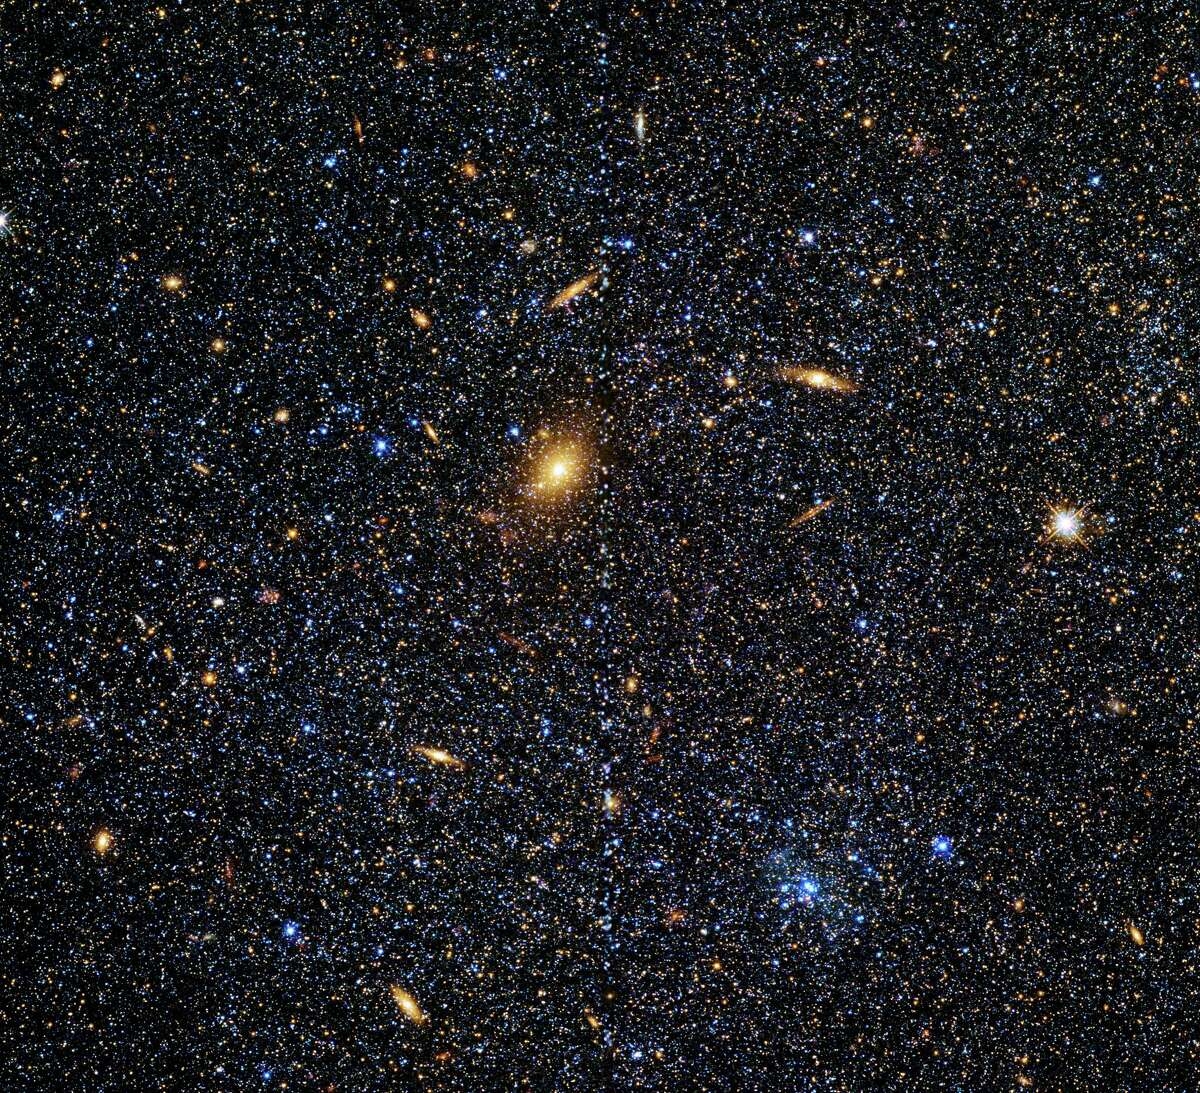 Caldwell 51, also known as IC 1613, is an irregular dwarf galaxy located in the constellation Cetus. Caldwell 51 is difficult to spot and is considered one of the most elusive Caldwell objects. It appears as an extremely faint and diffuse smudge even when viewed through a moderately sized telescope.